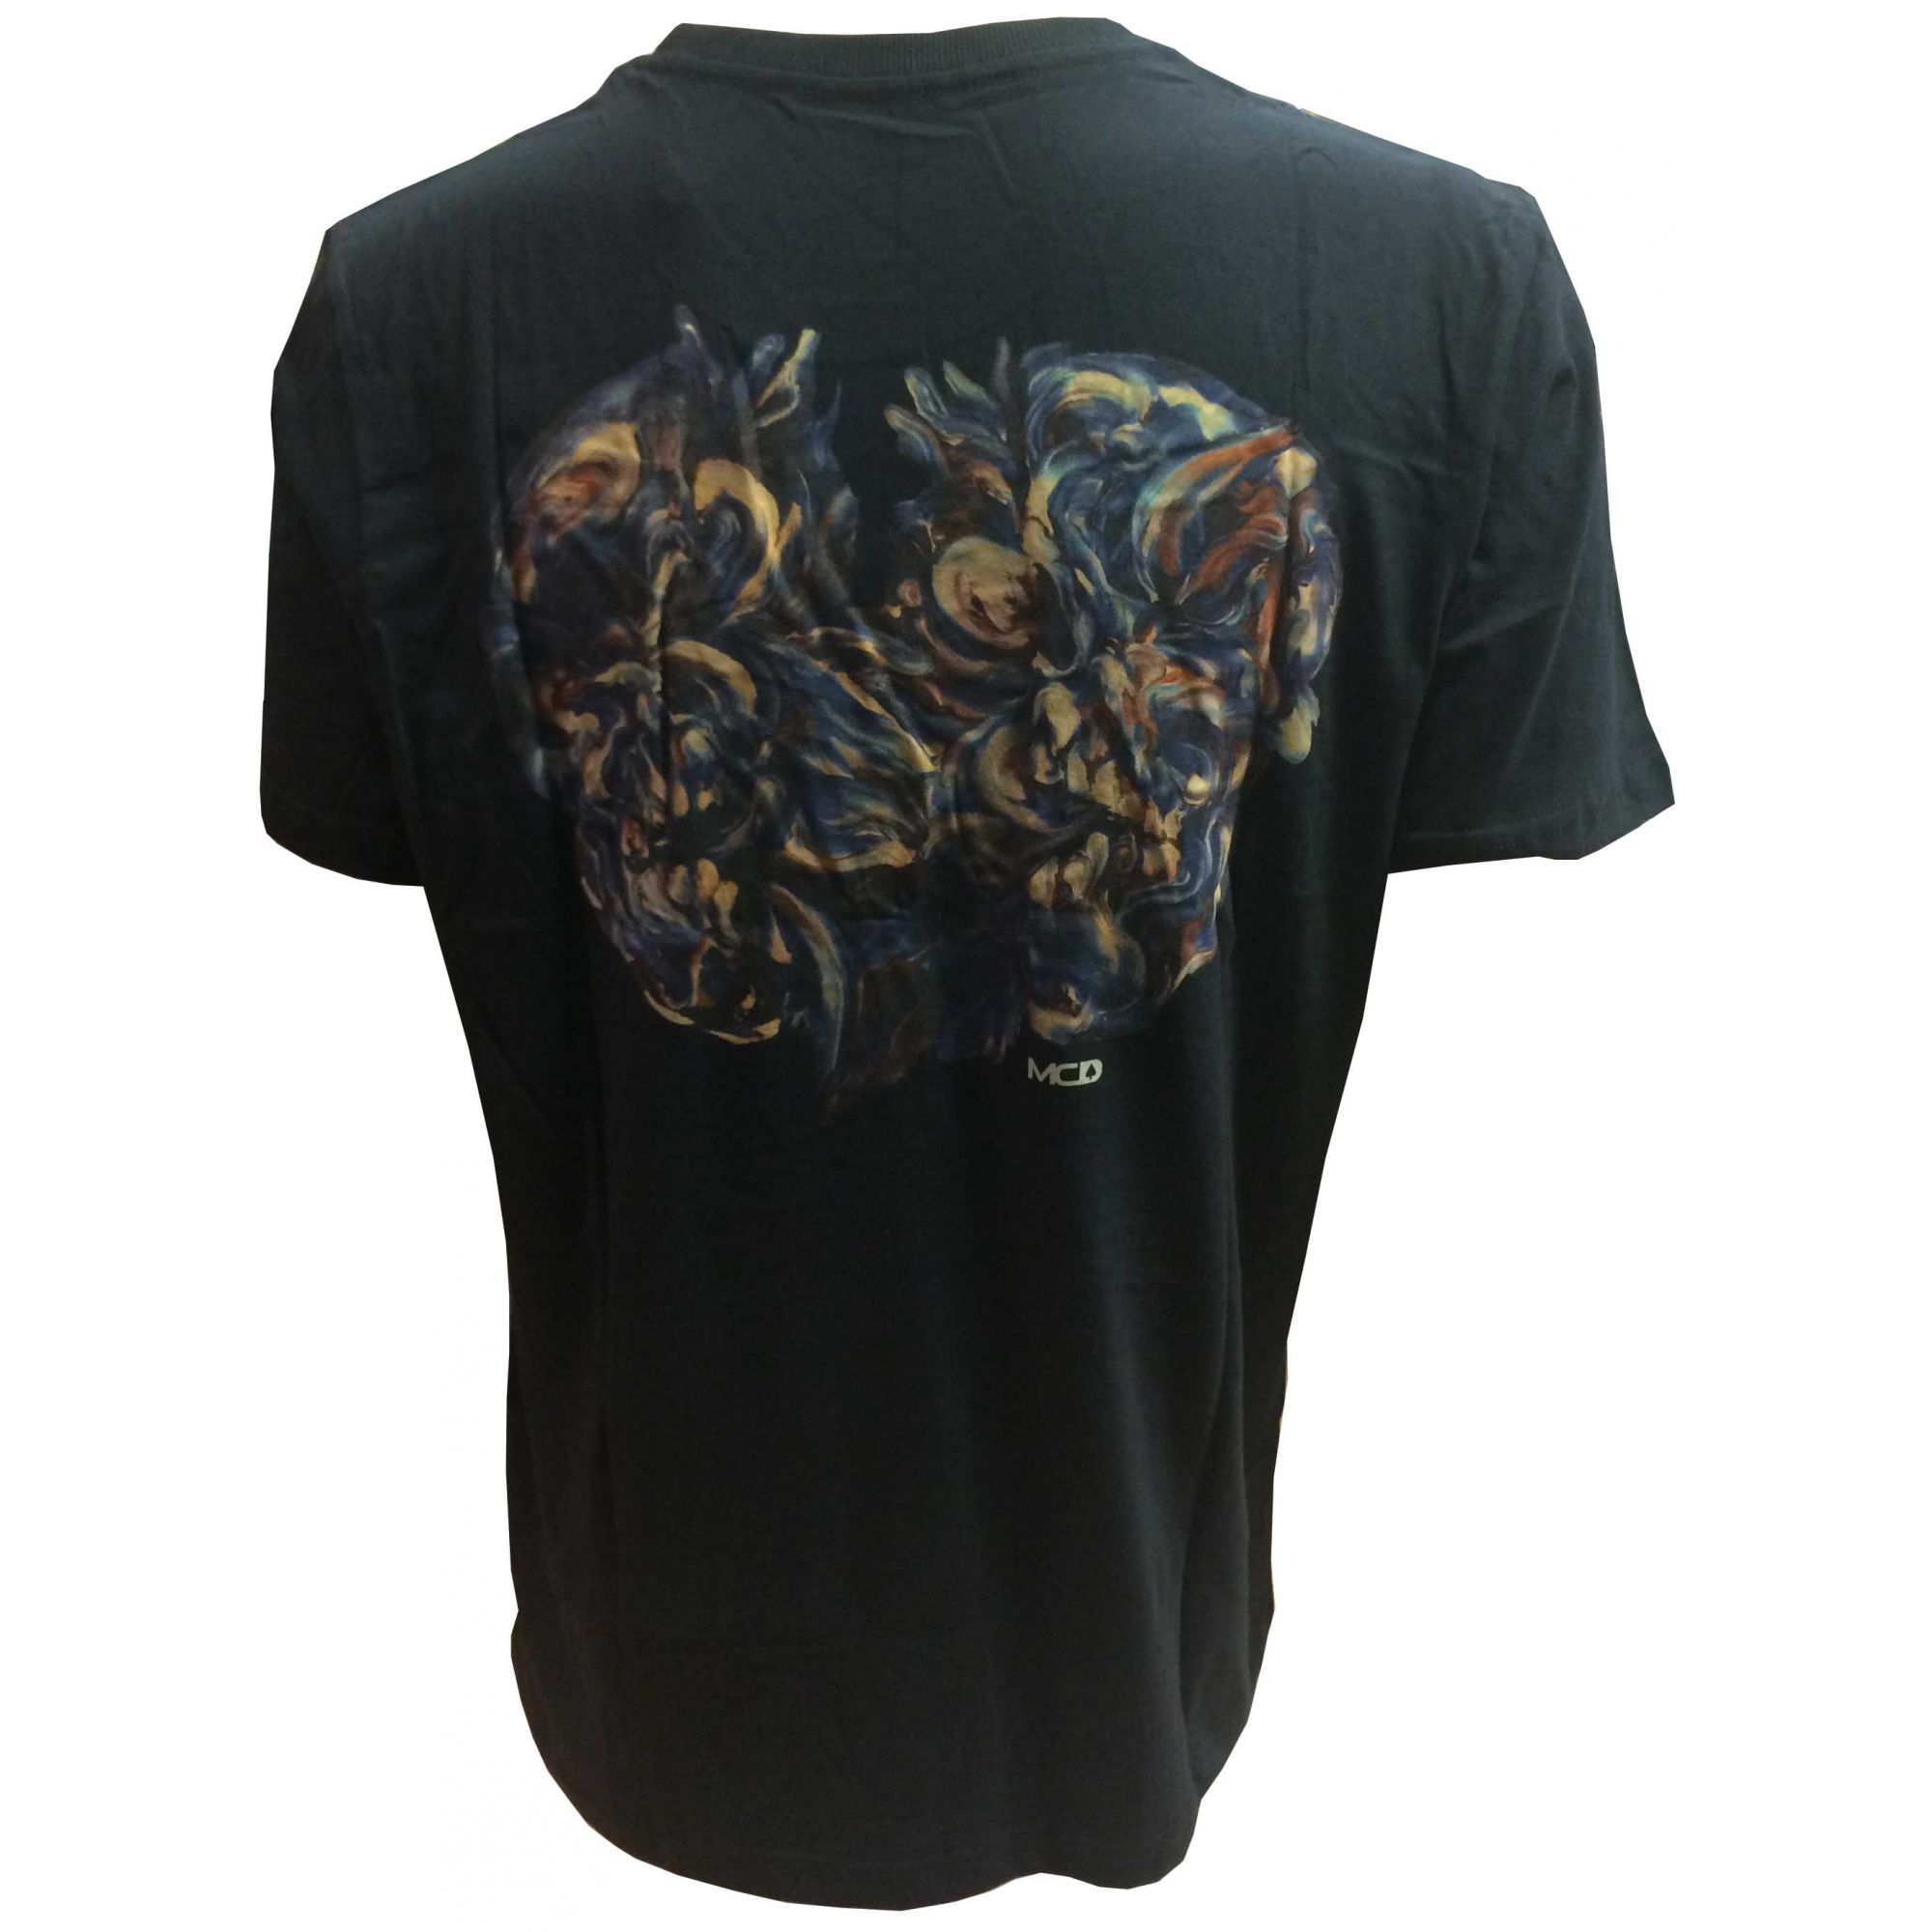 Camiseta Mcd Divided Brain Masculina